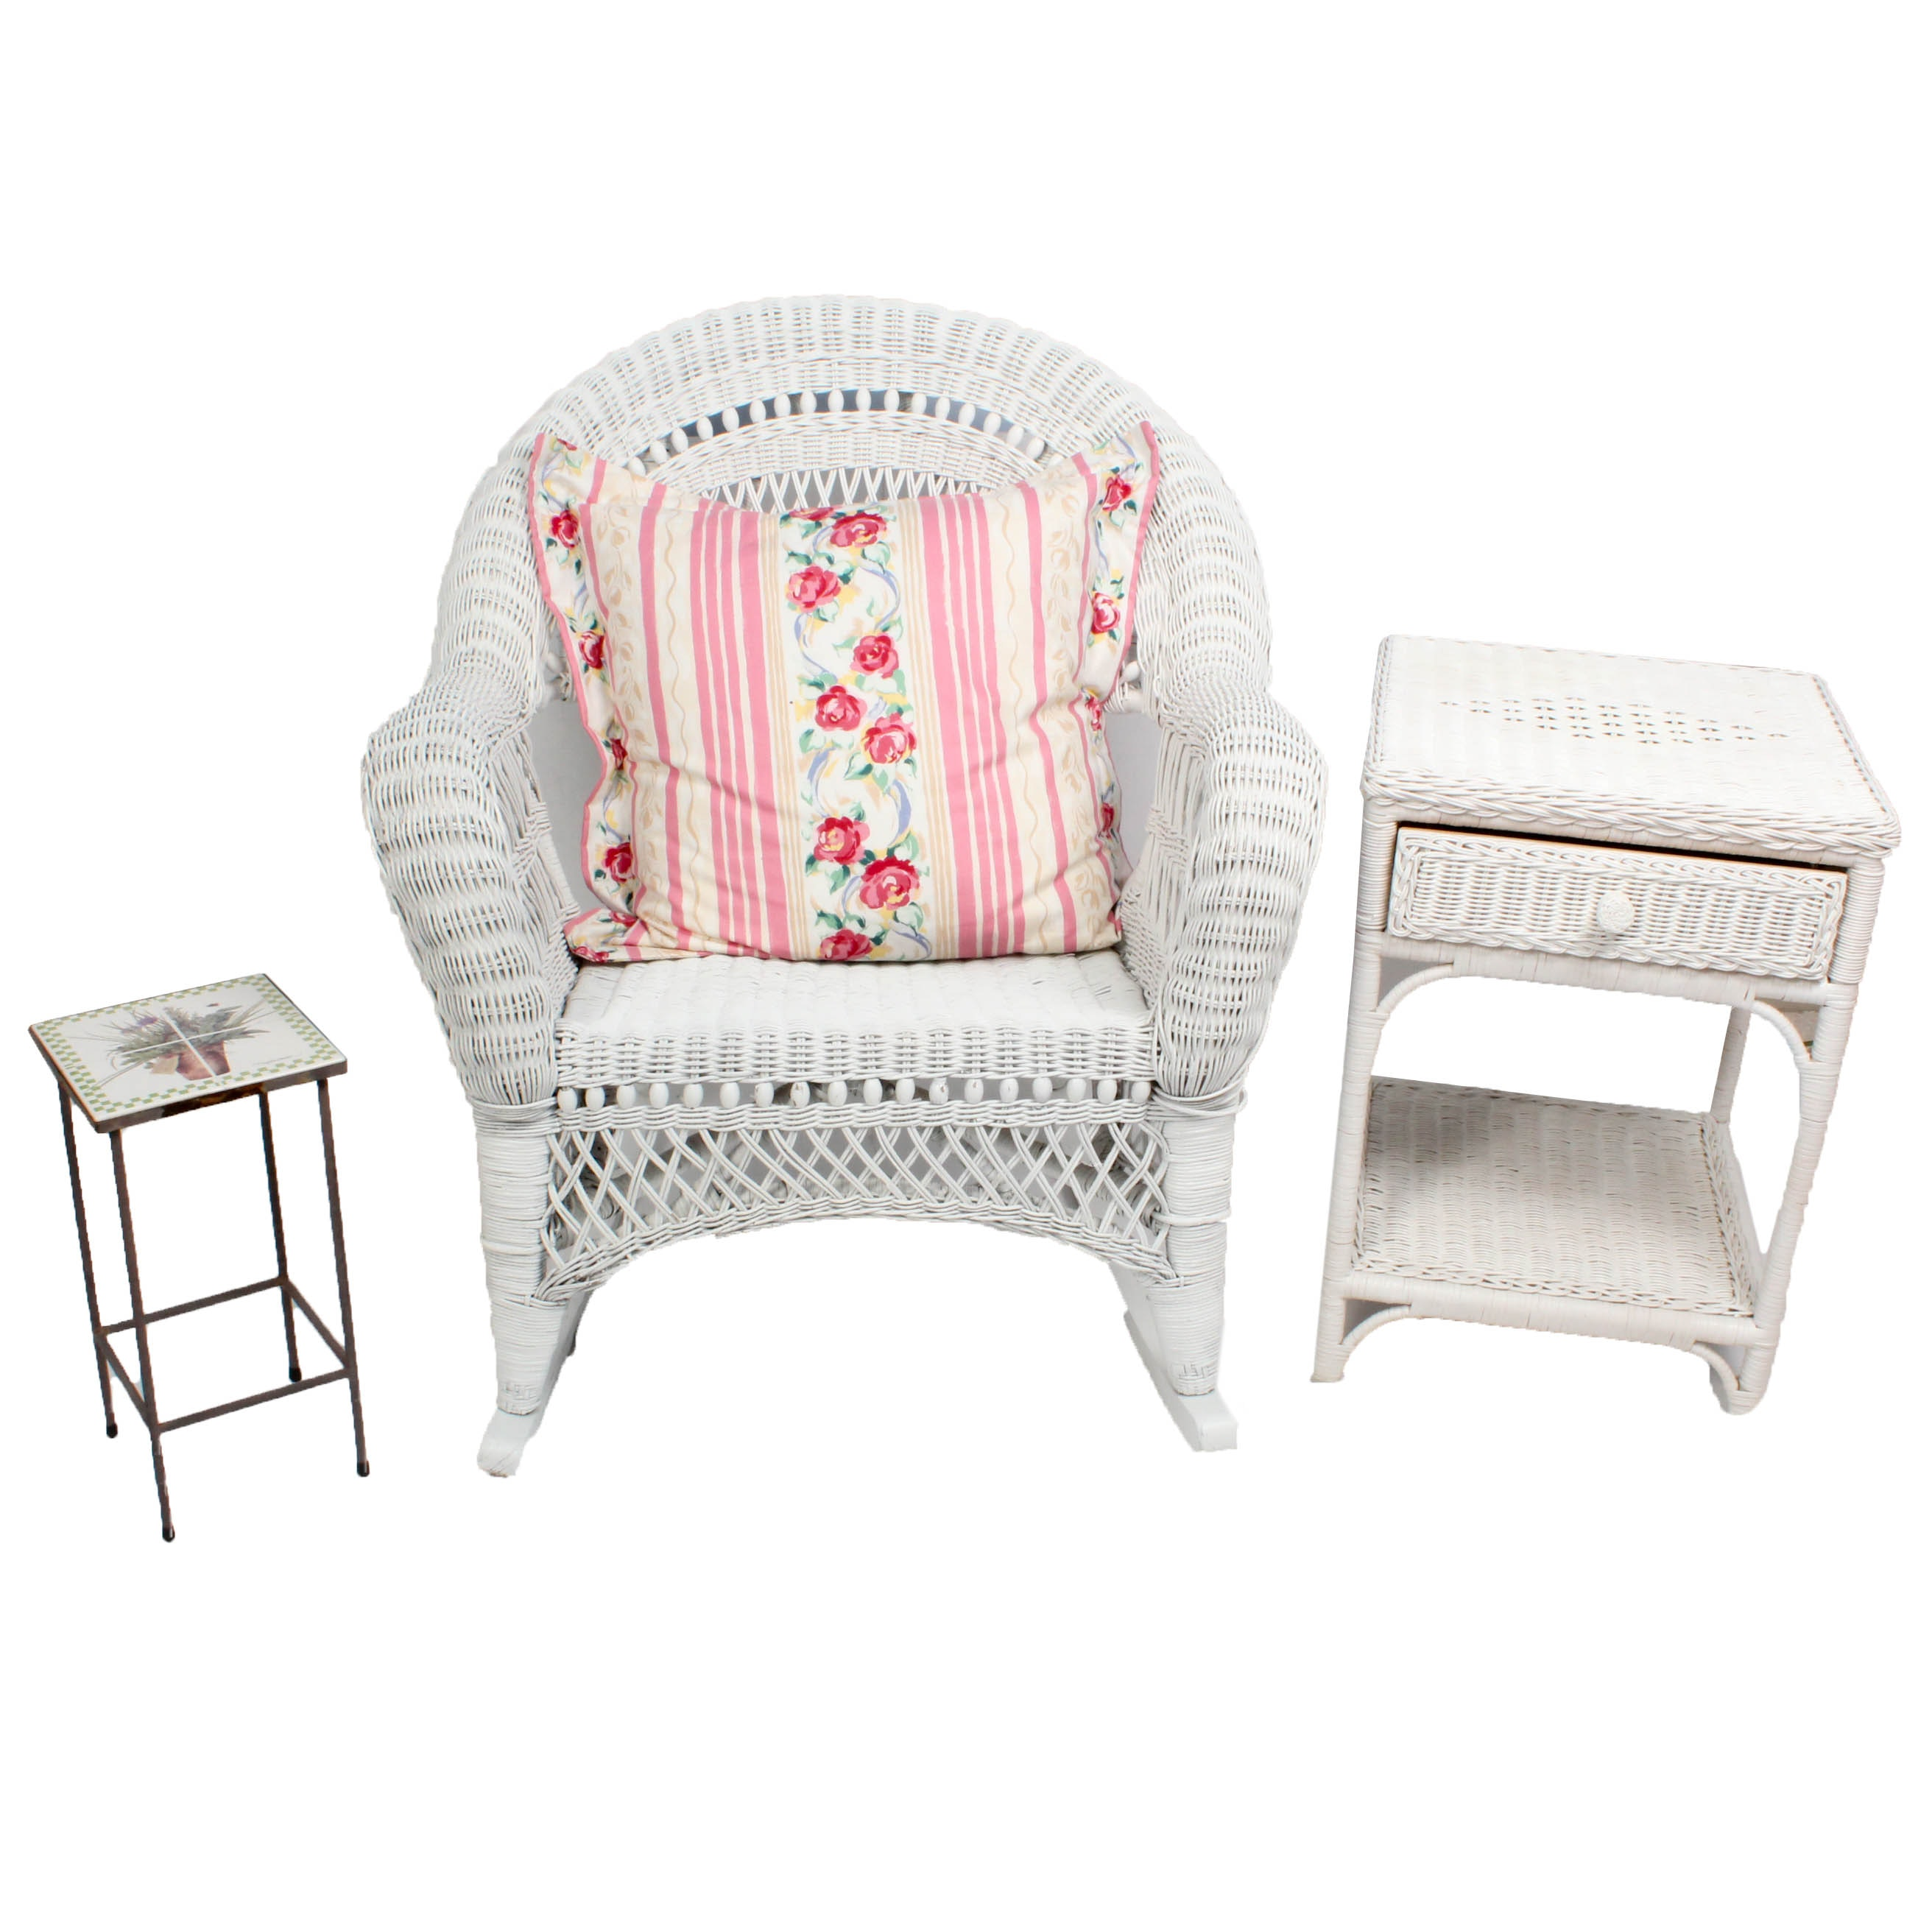 White Painted Wicker Rocker, Nightstand and Painted Tile Side Table